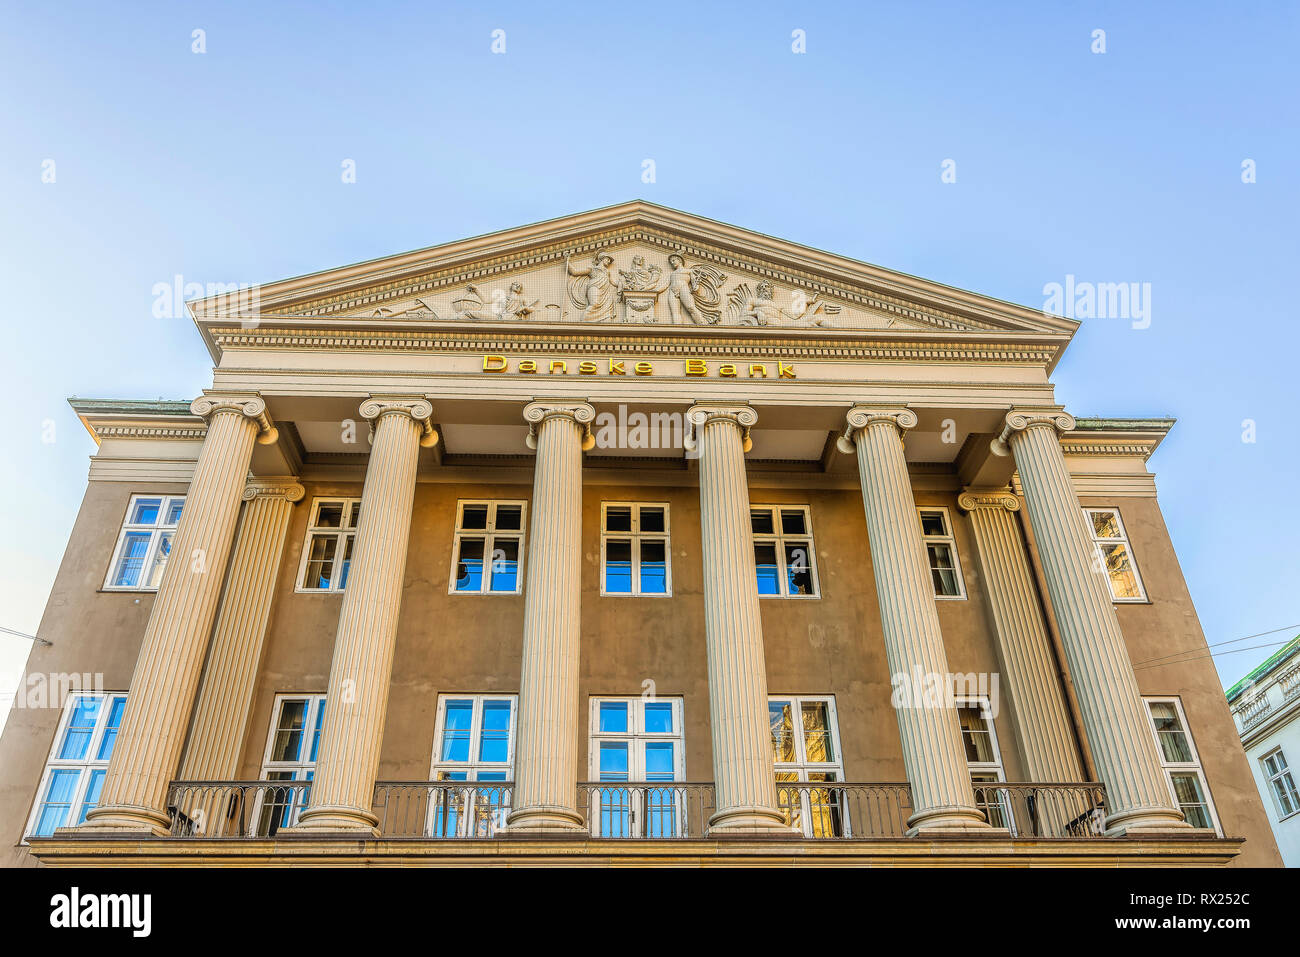 The facade of the money laundering Danish Bank with ionic columns and a sclprured pediment, Copenhagen, February 16, 2019 - Stock Image